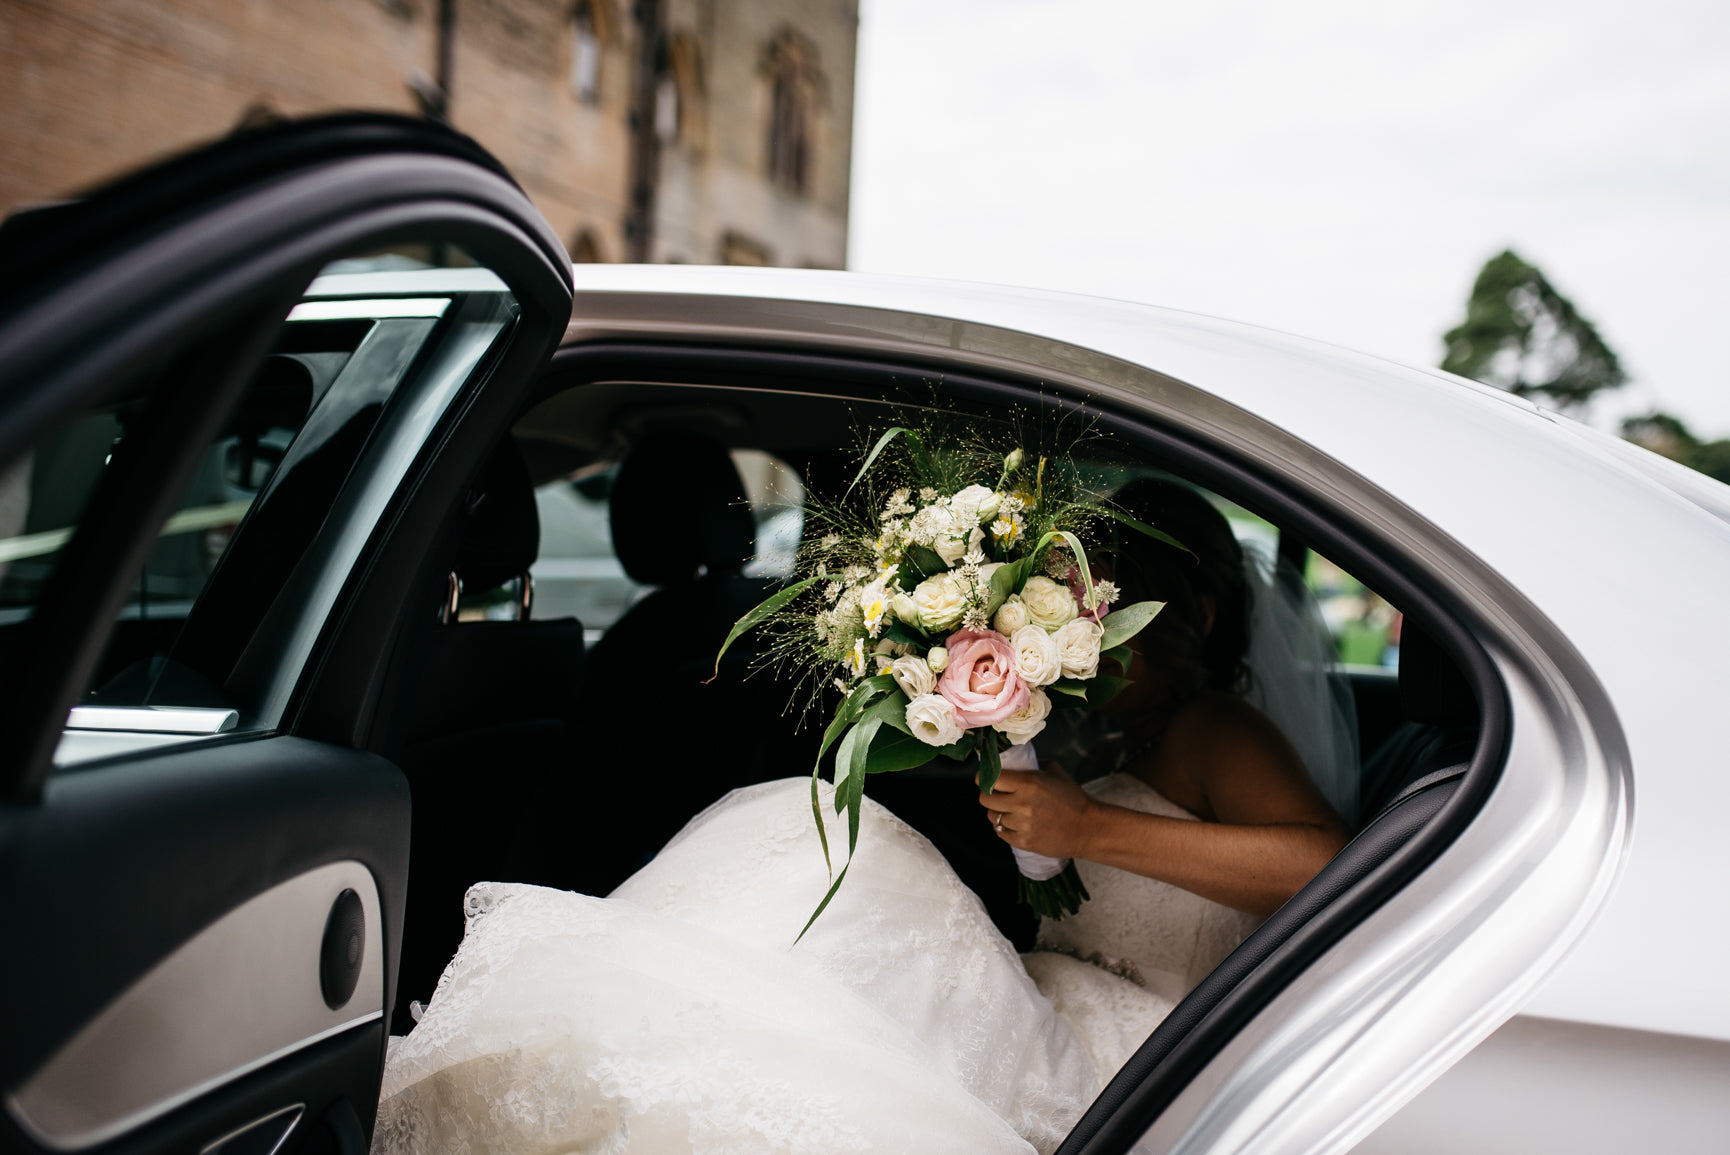 Wedding flowers Carriage Hall Plumtree